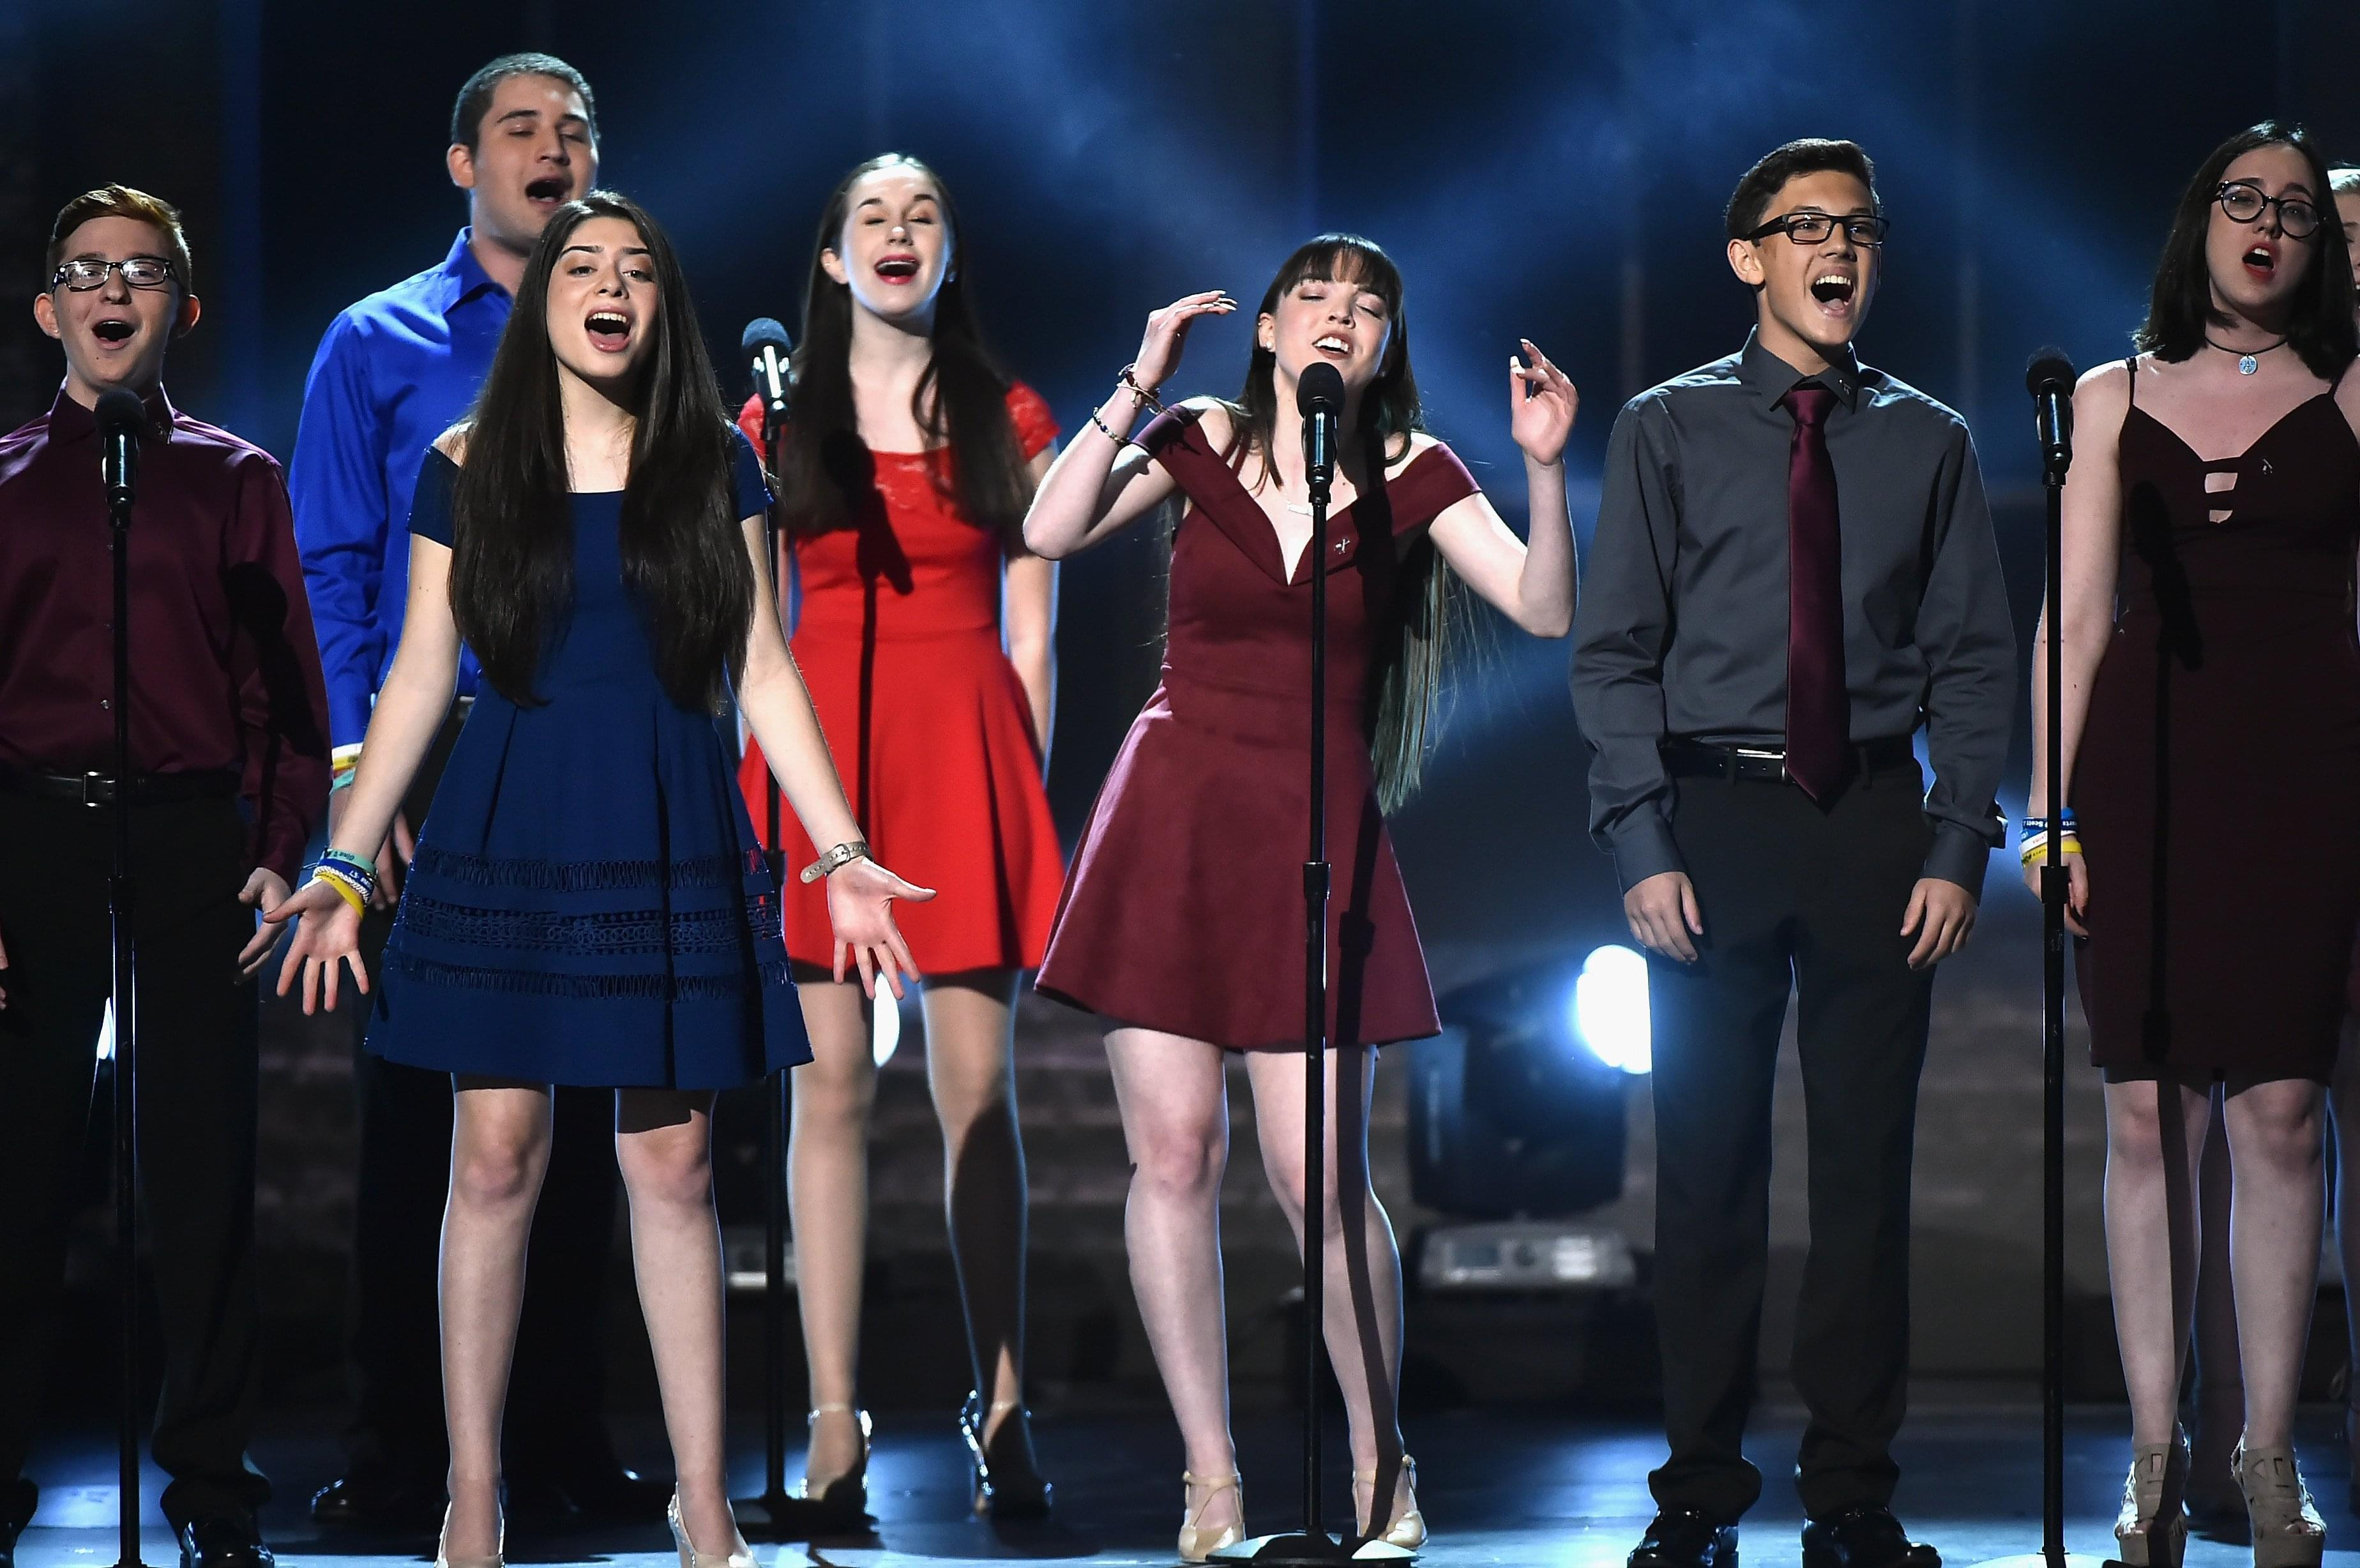 MARJORY STONEMAN DOUGLAS STUDENTS SING 'SEASONS OF LOVE' IN EMOTIONAL PERFORMANCE AT TONY AWARDS